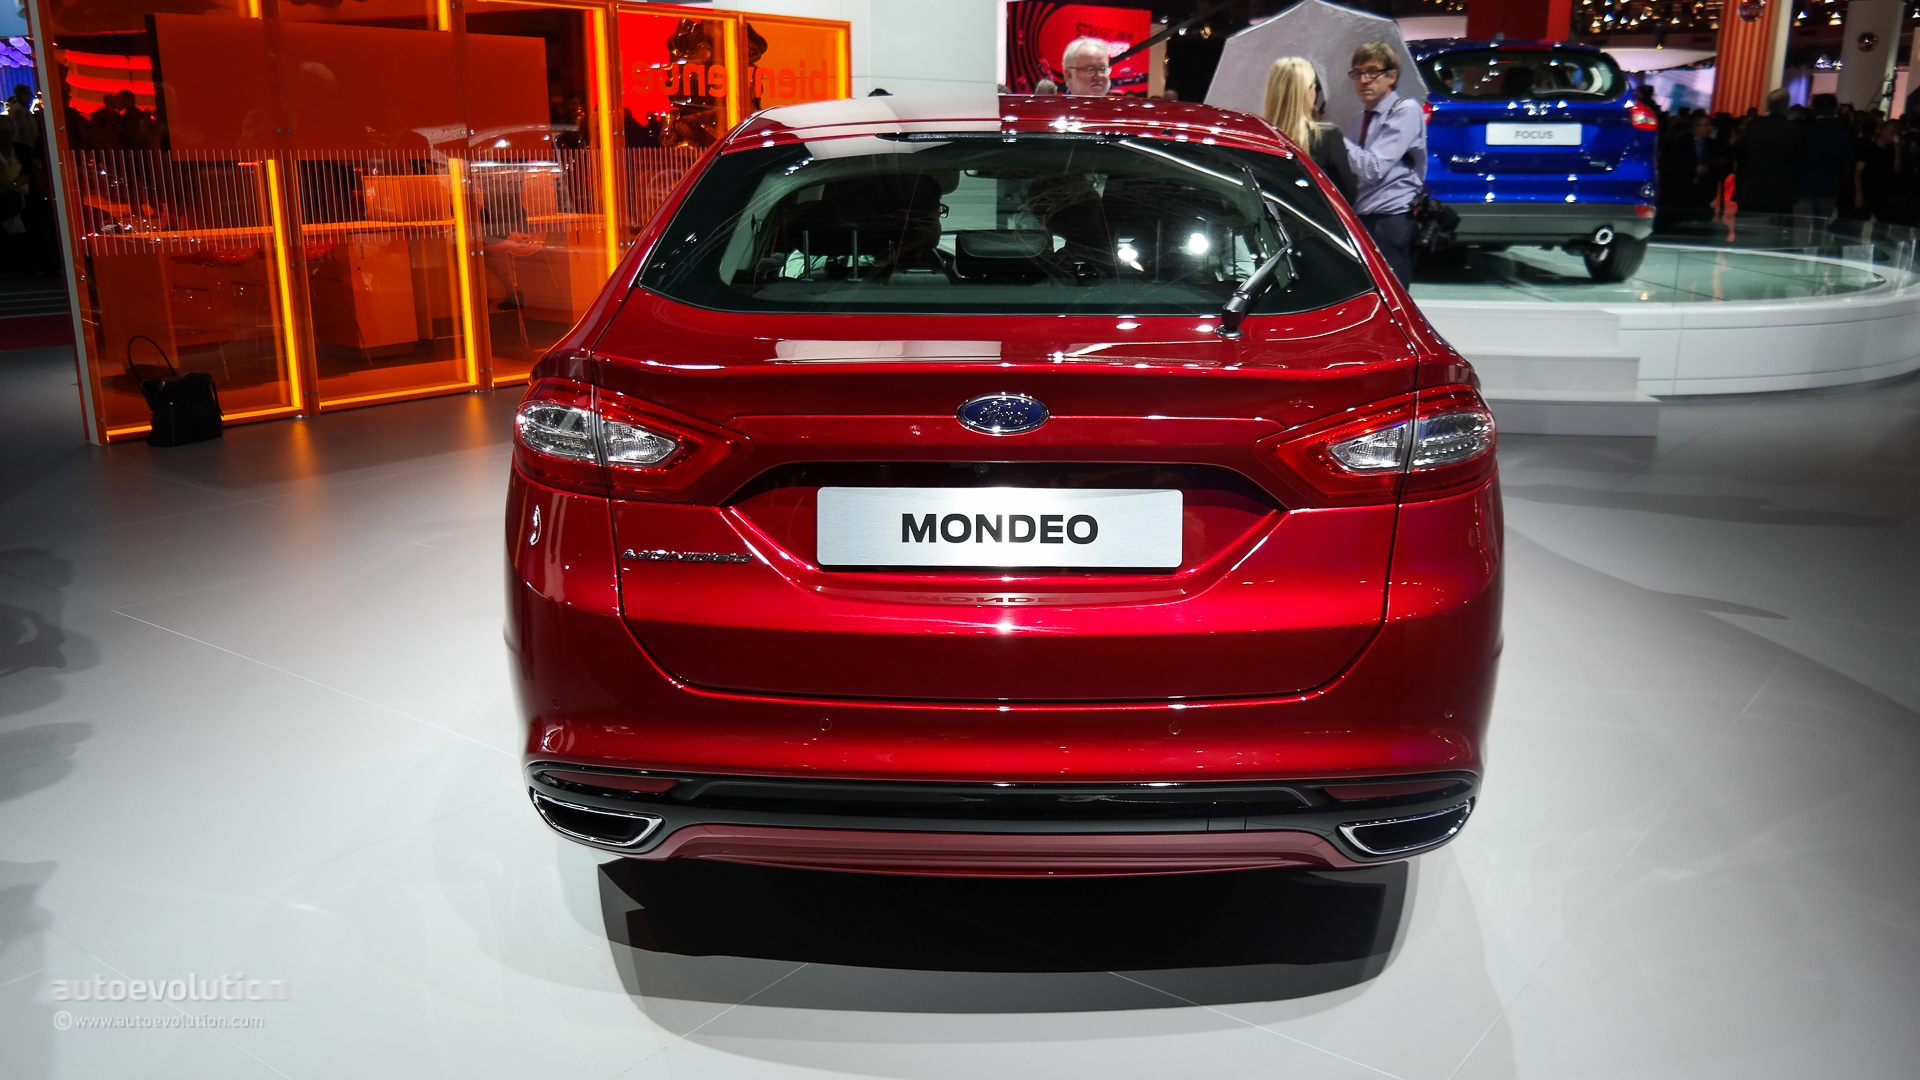 2015 ford mondeo makes world debut at the paris motor show live photos autoevolution. Black Bedroom Furniture Sets. Home Design Ideas